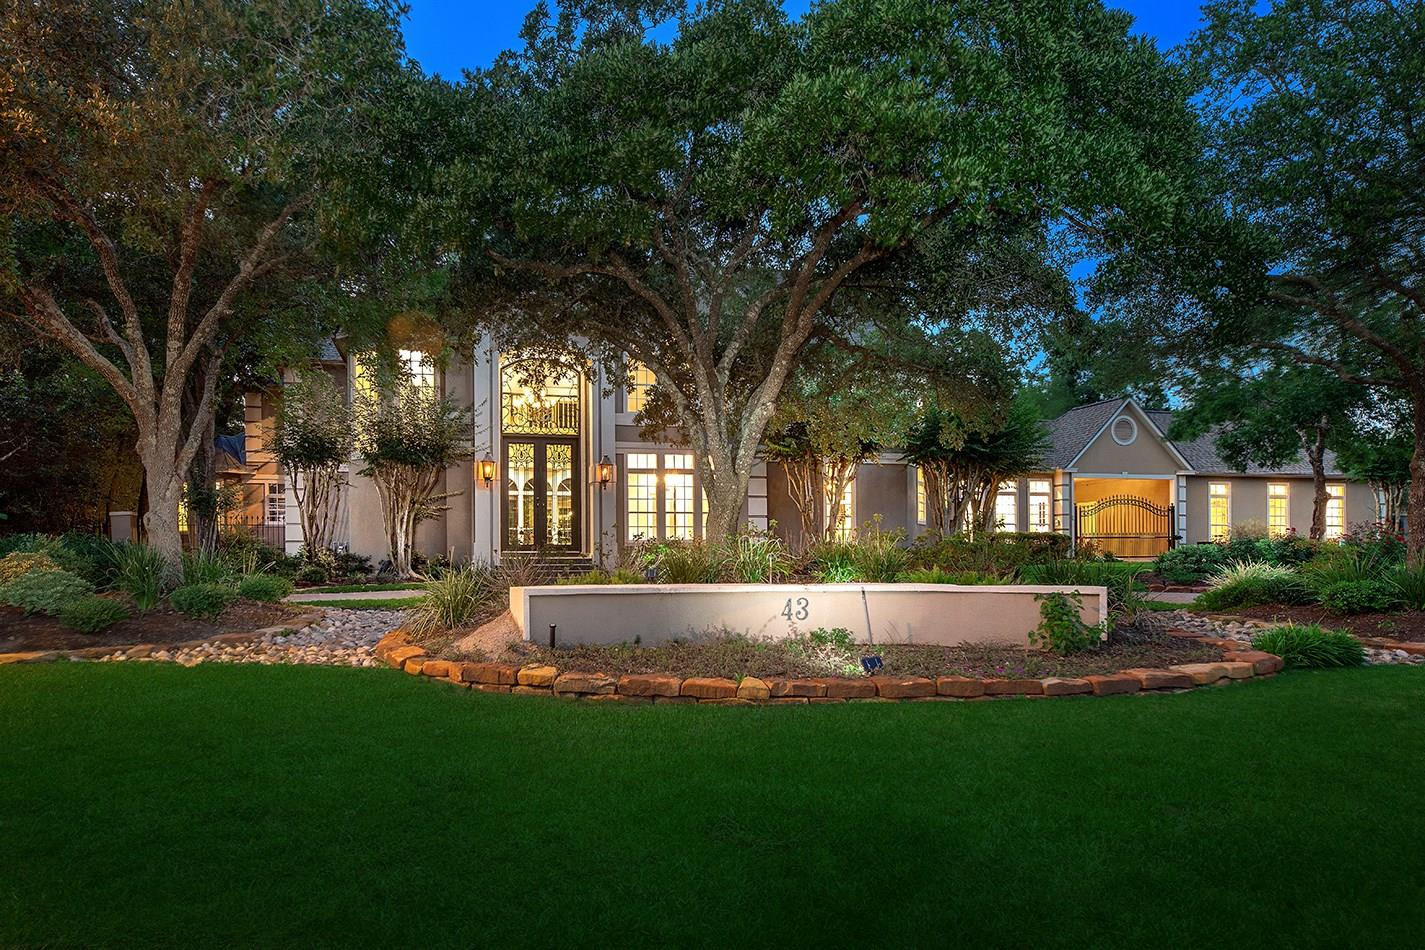 43 S Windsail Place Property Photo - The Woodlands, TX real estate listing